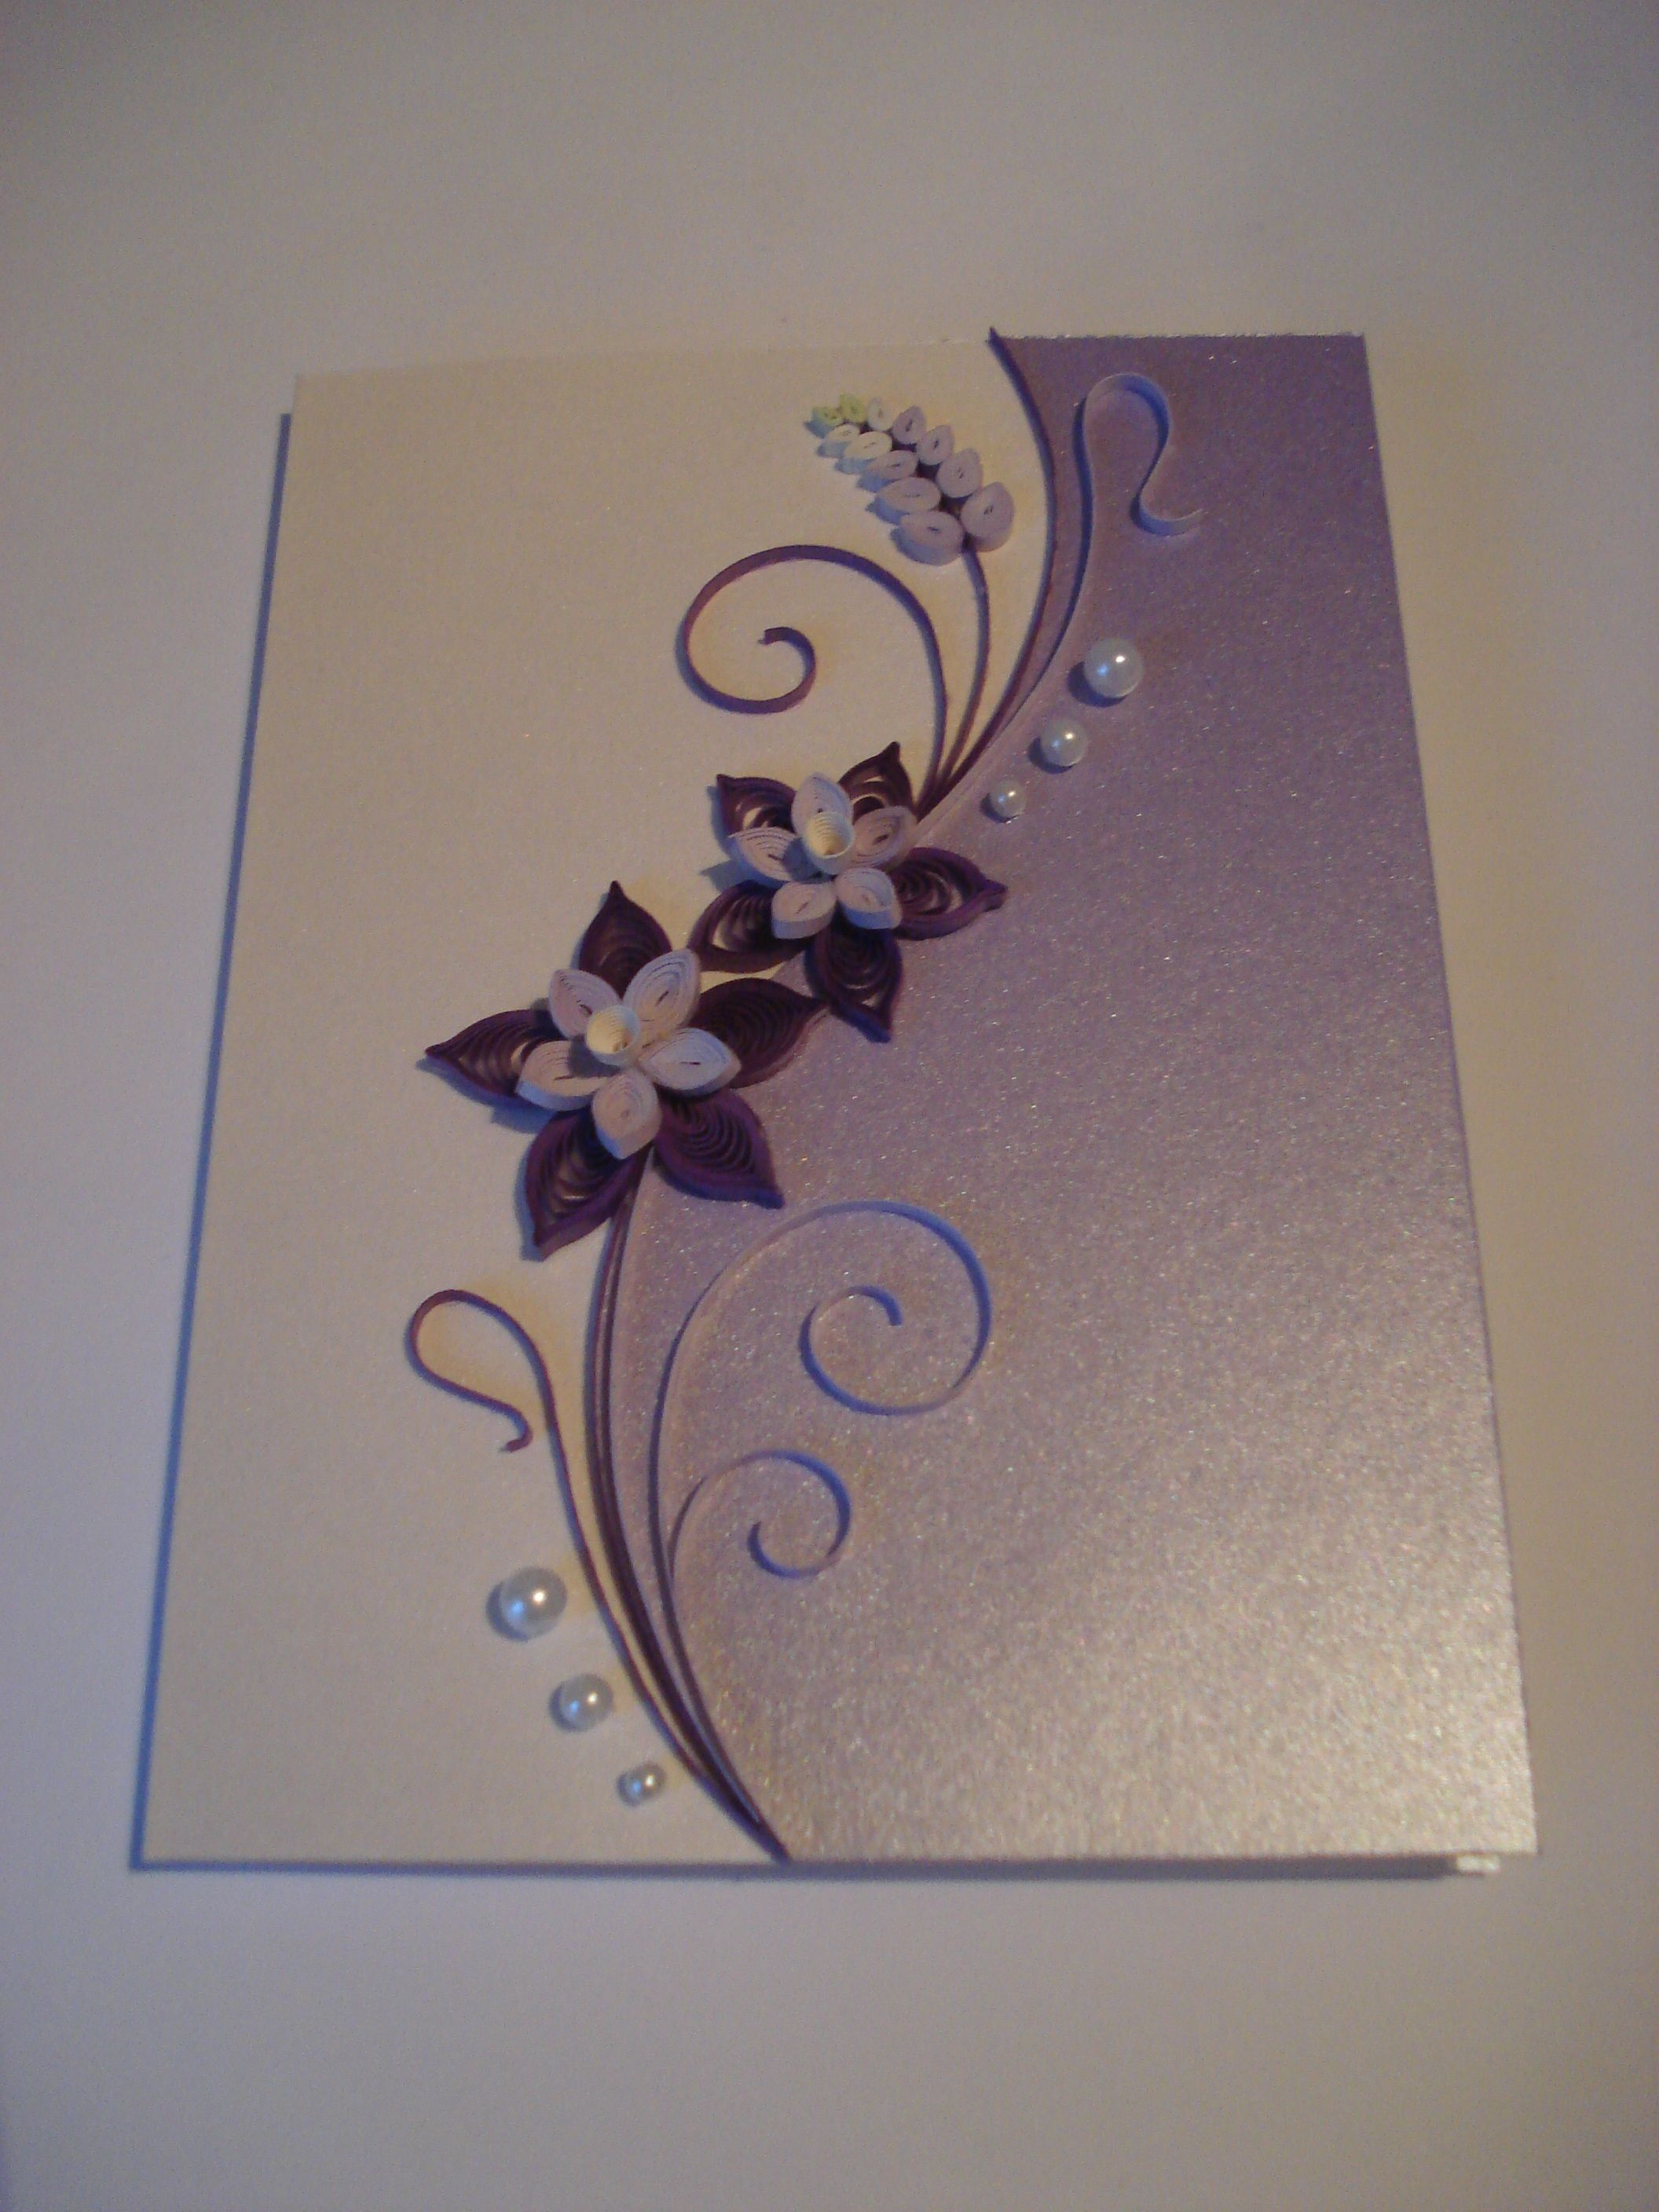 Quilled Paper Handmade Greeting Card With Flowers In Lilac By